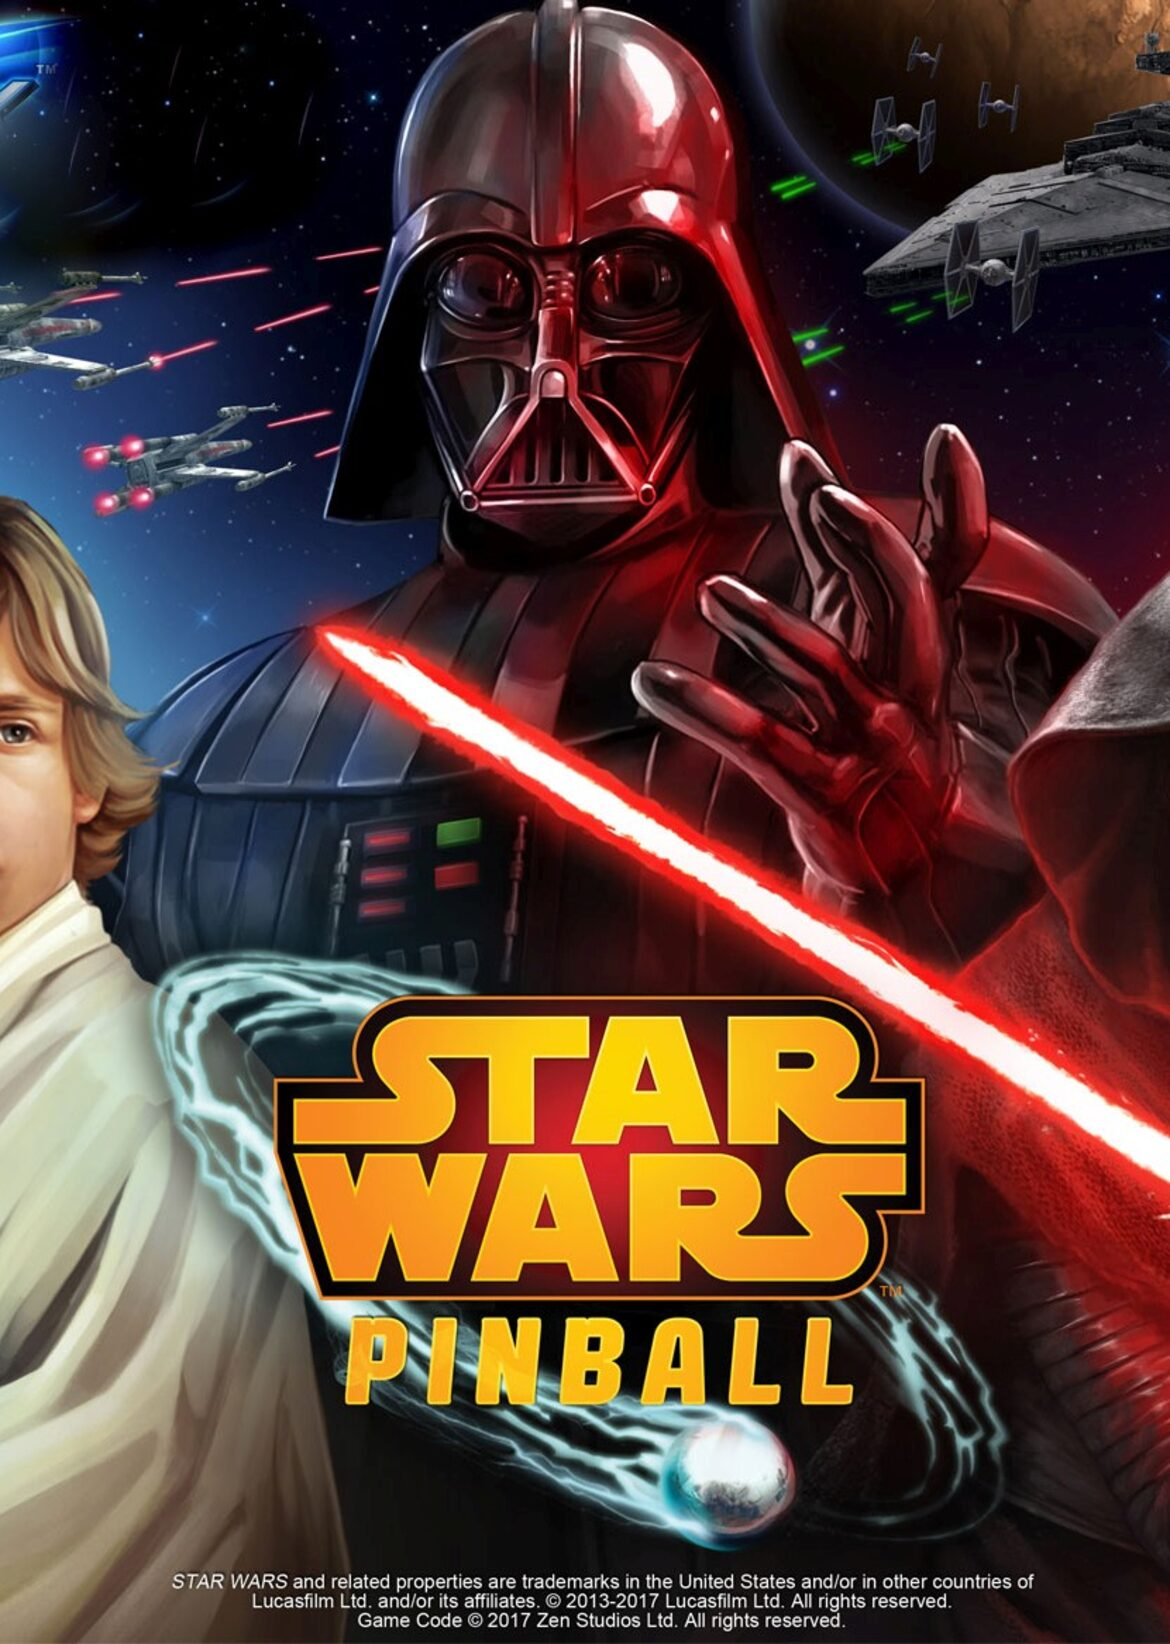 Buy Pinball FX3 - Star Wars Pinball 3 (DLC) Bundle Steam Key GLOBAL | ENEBA